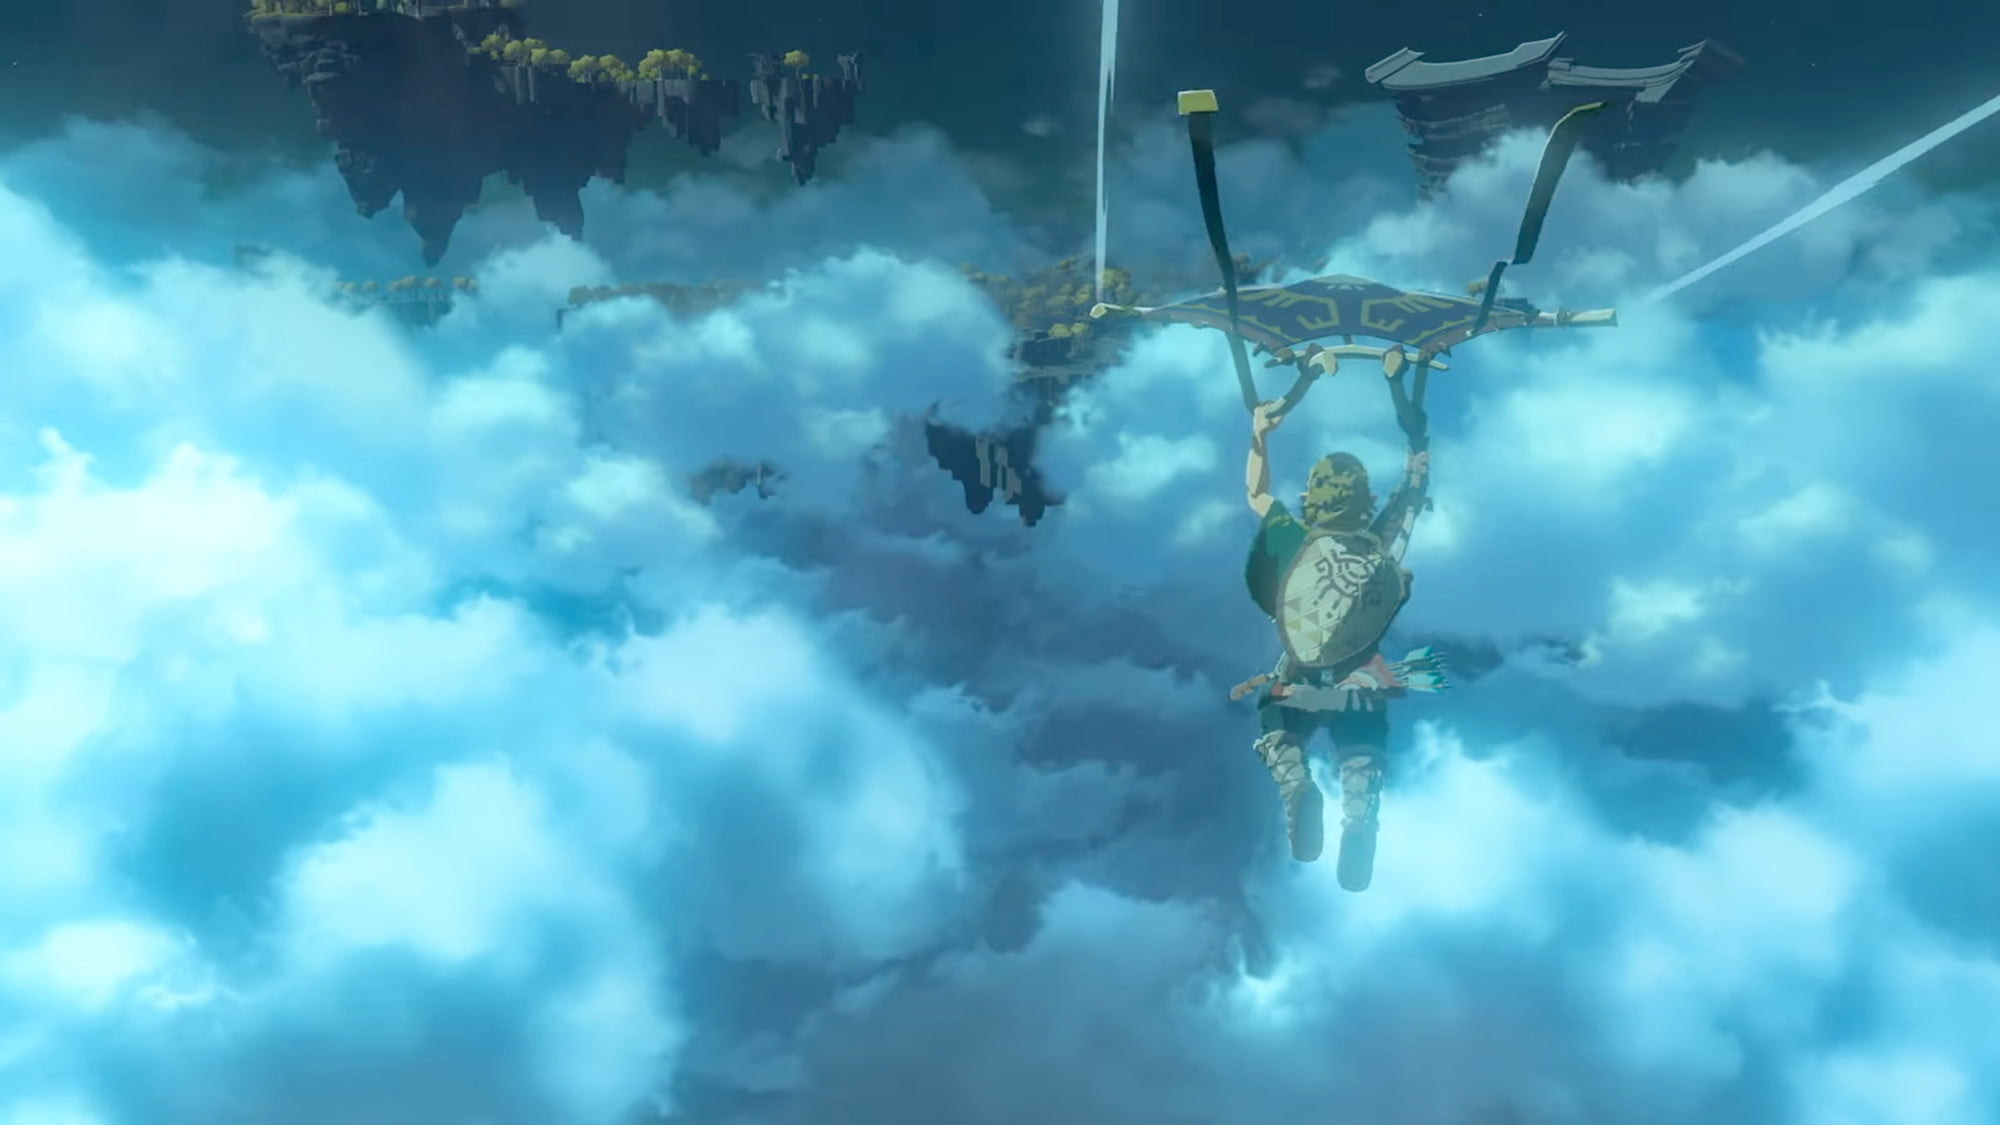 Breath of the Wild 2 takes Link back to the skies with a 2022 launch window